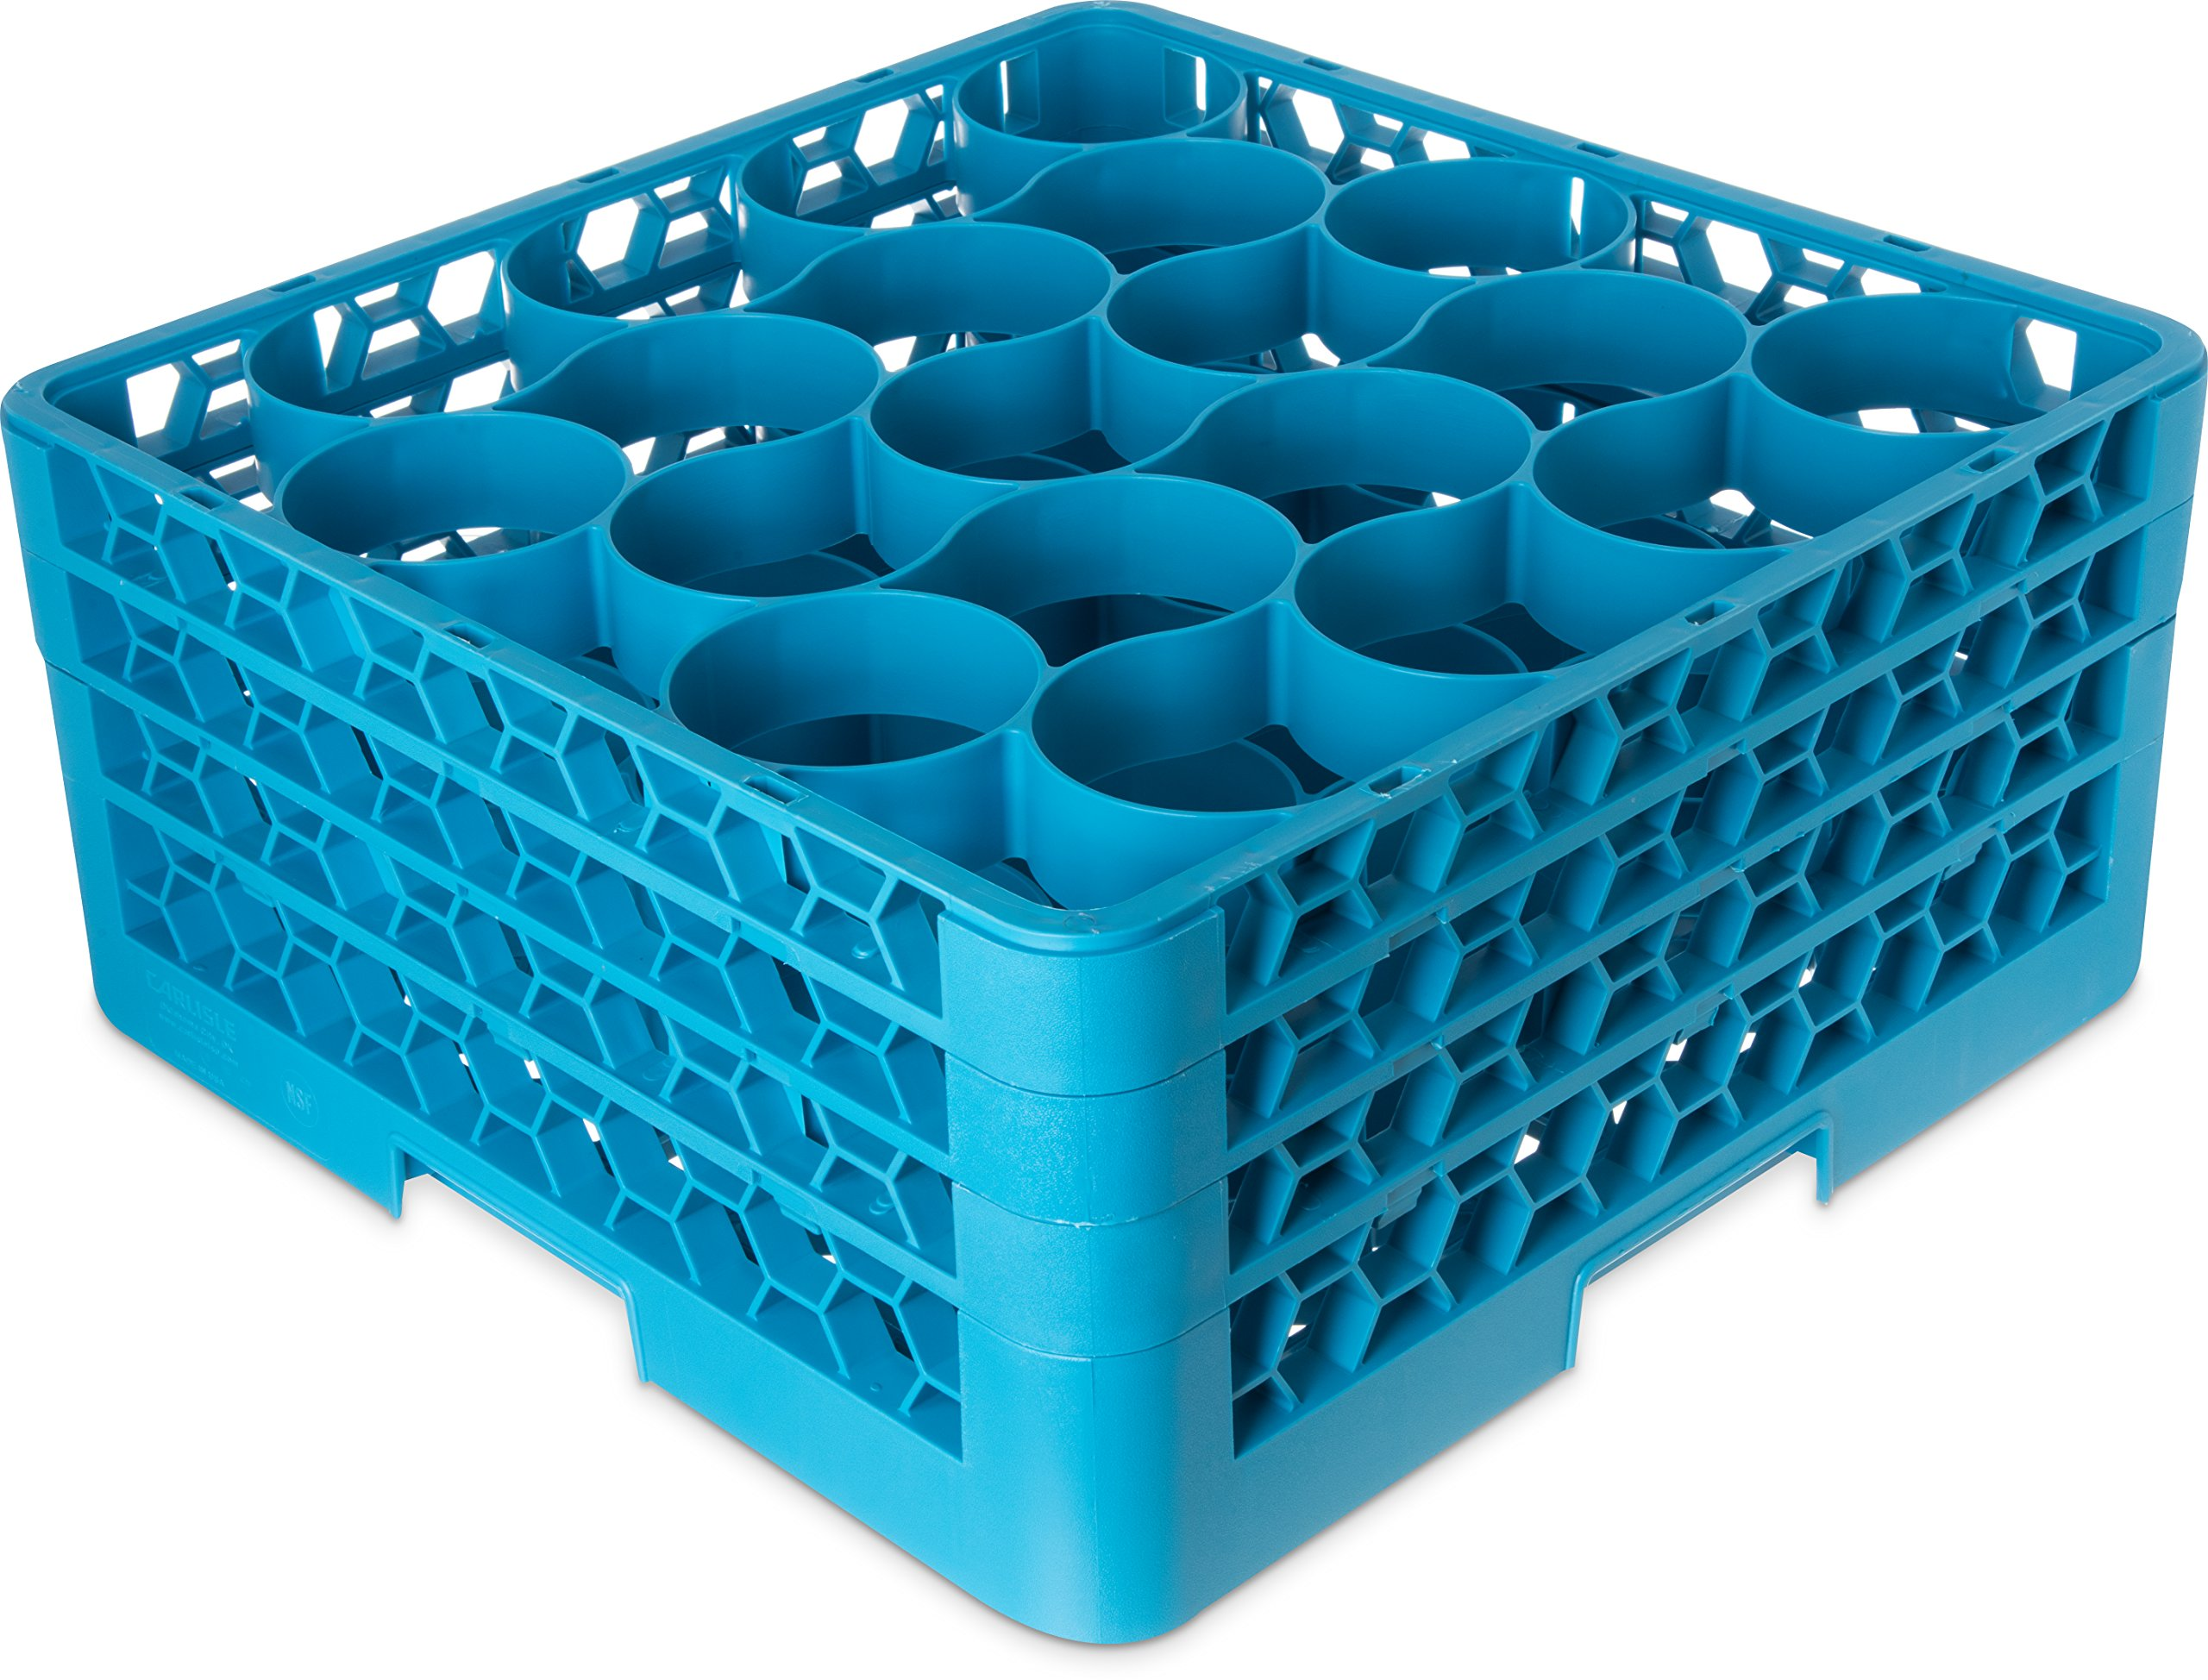 Carlisle RW20-214 OptiClean NeWave Polypropylene 20-Compartment Glass Rack with 3 Extenders, 19-3/4'' Length x 19-3/4'' Width x 8.72'' Height, Blue (Case of 2)